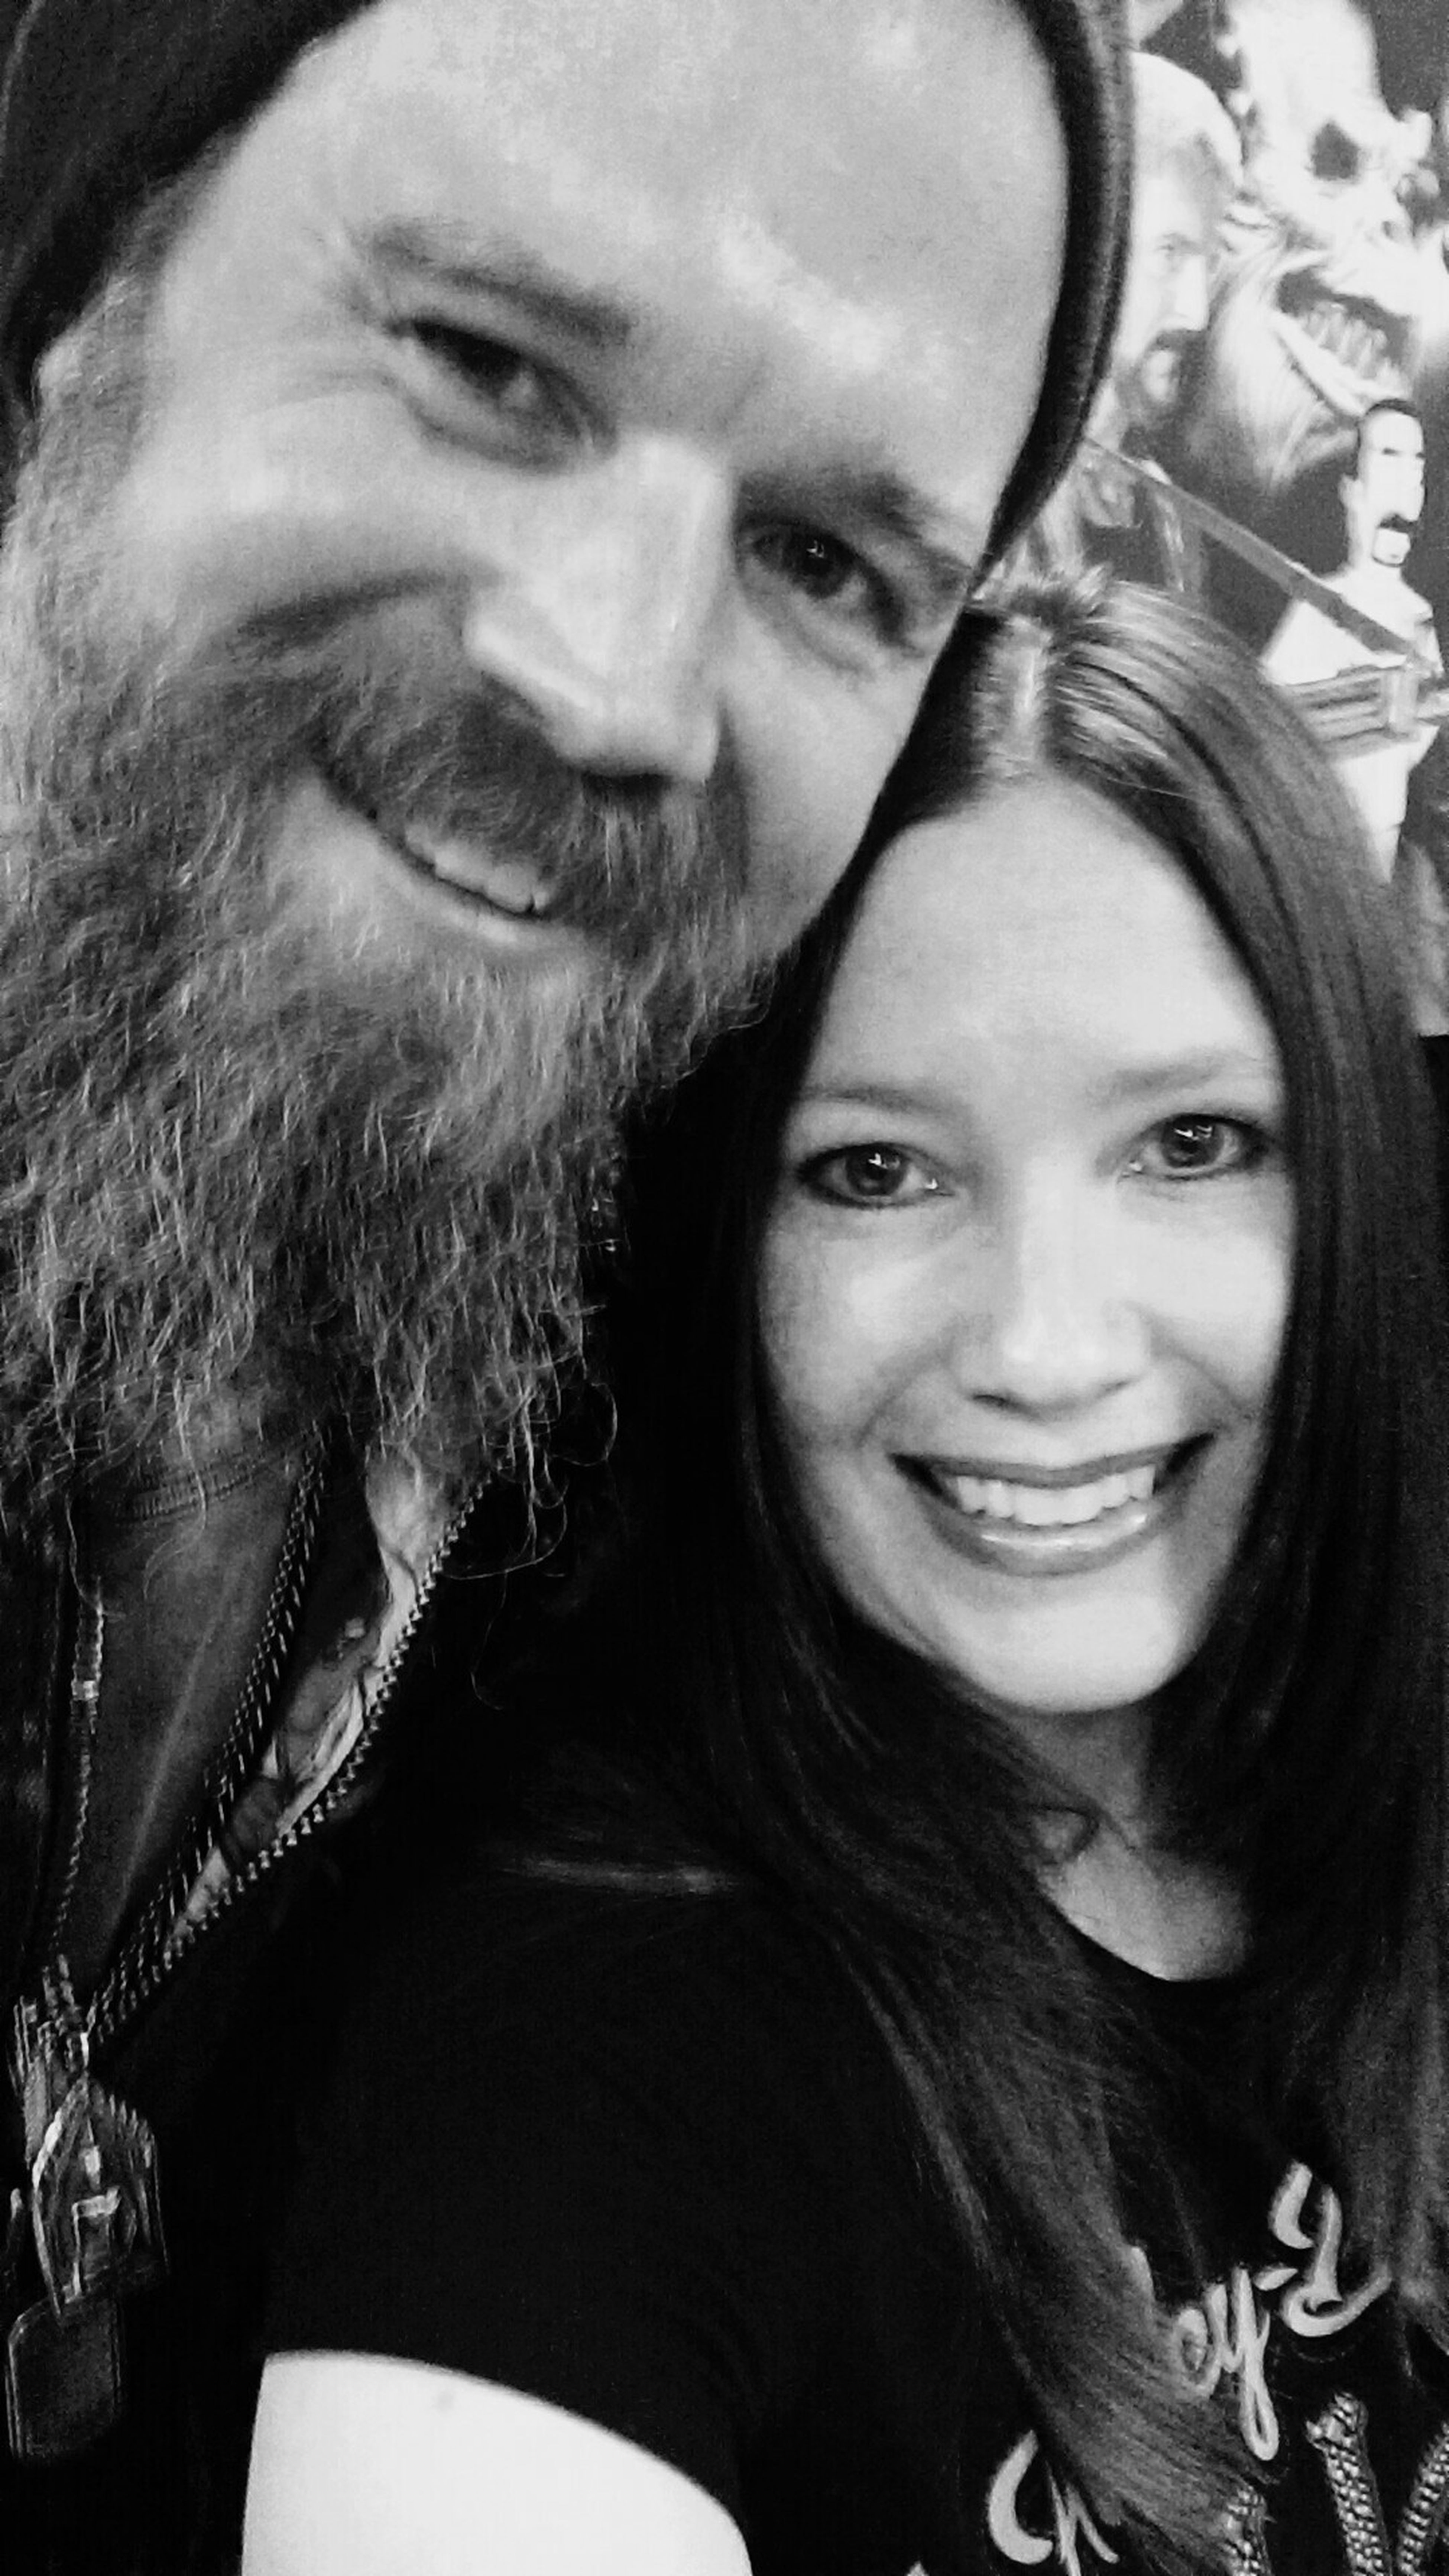 Opie and Me - Steel City Con, Monroeville Convention Center - August 8, 2015 Opie Ryan Hurst Sonsofanarchy SoA Steel City Con Monroeville Pittsburgh Love Him